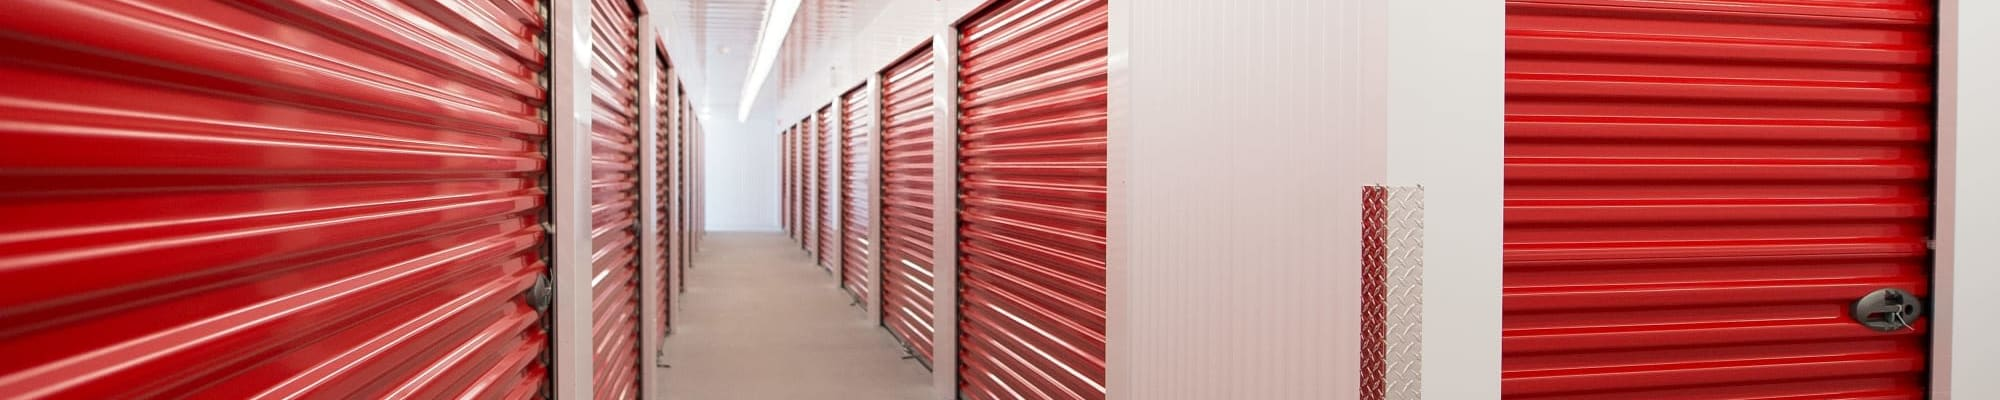 Temperature controlled storage at Mini Storage Depot in Knoxville, Tennessee